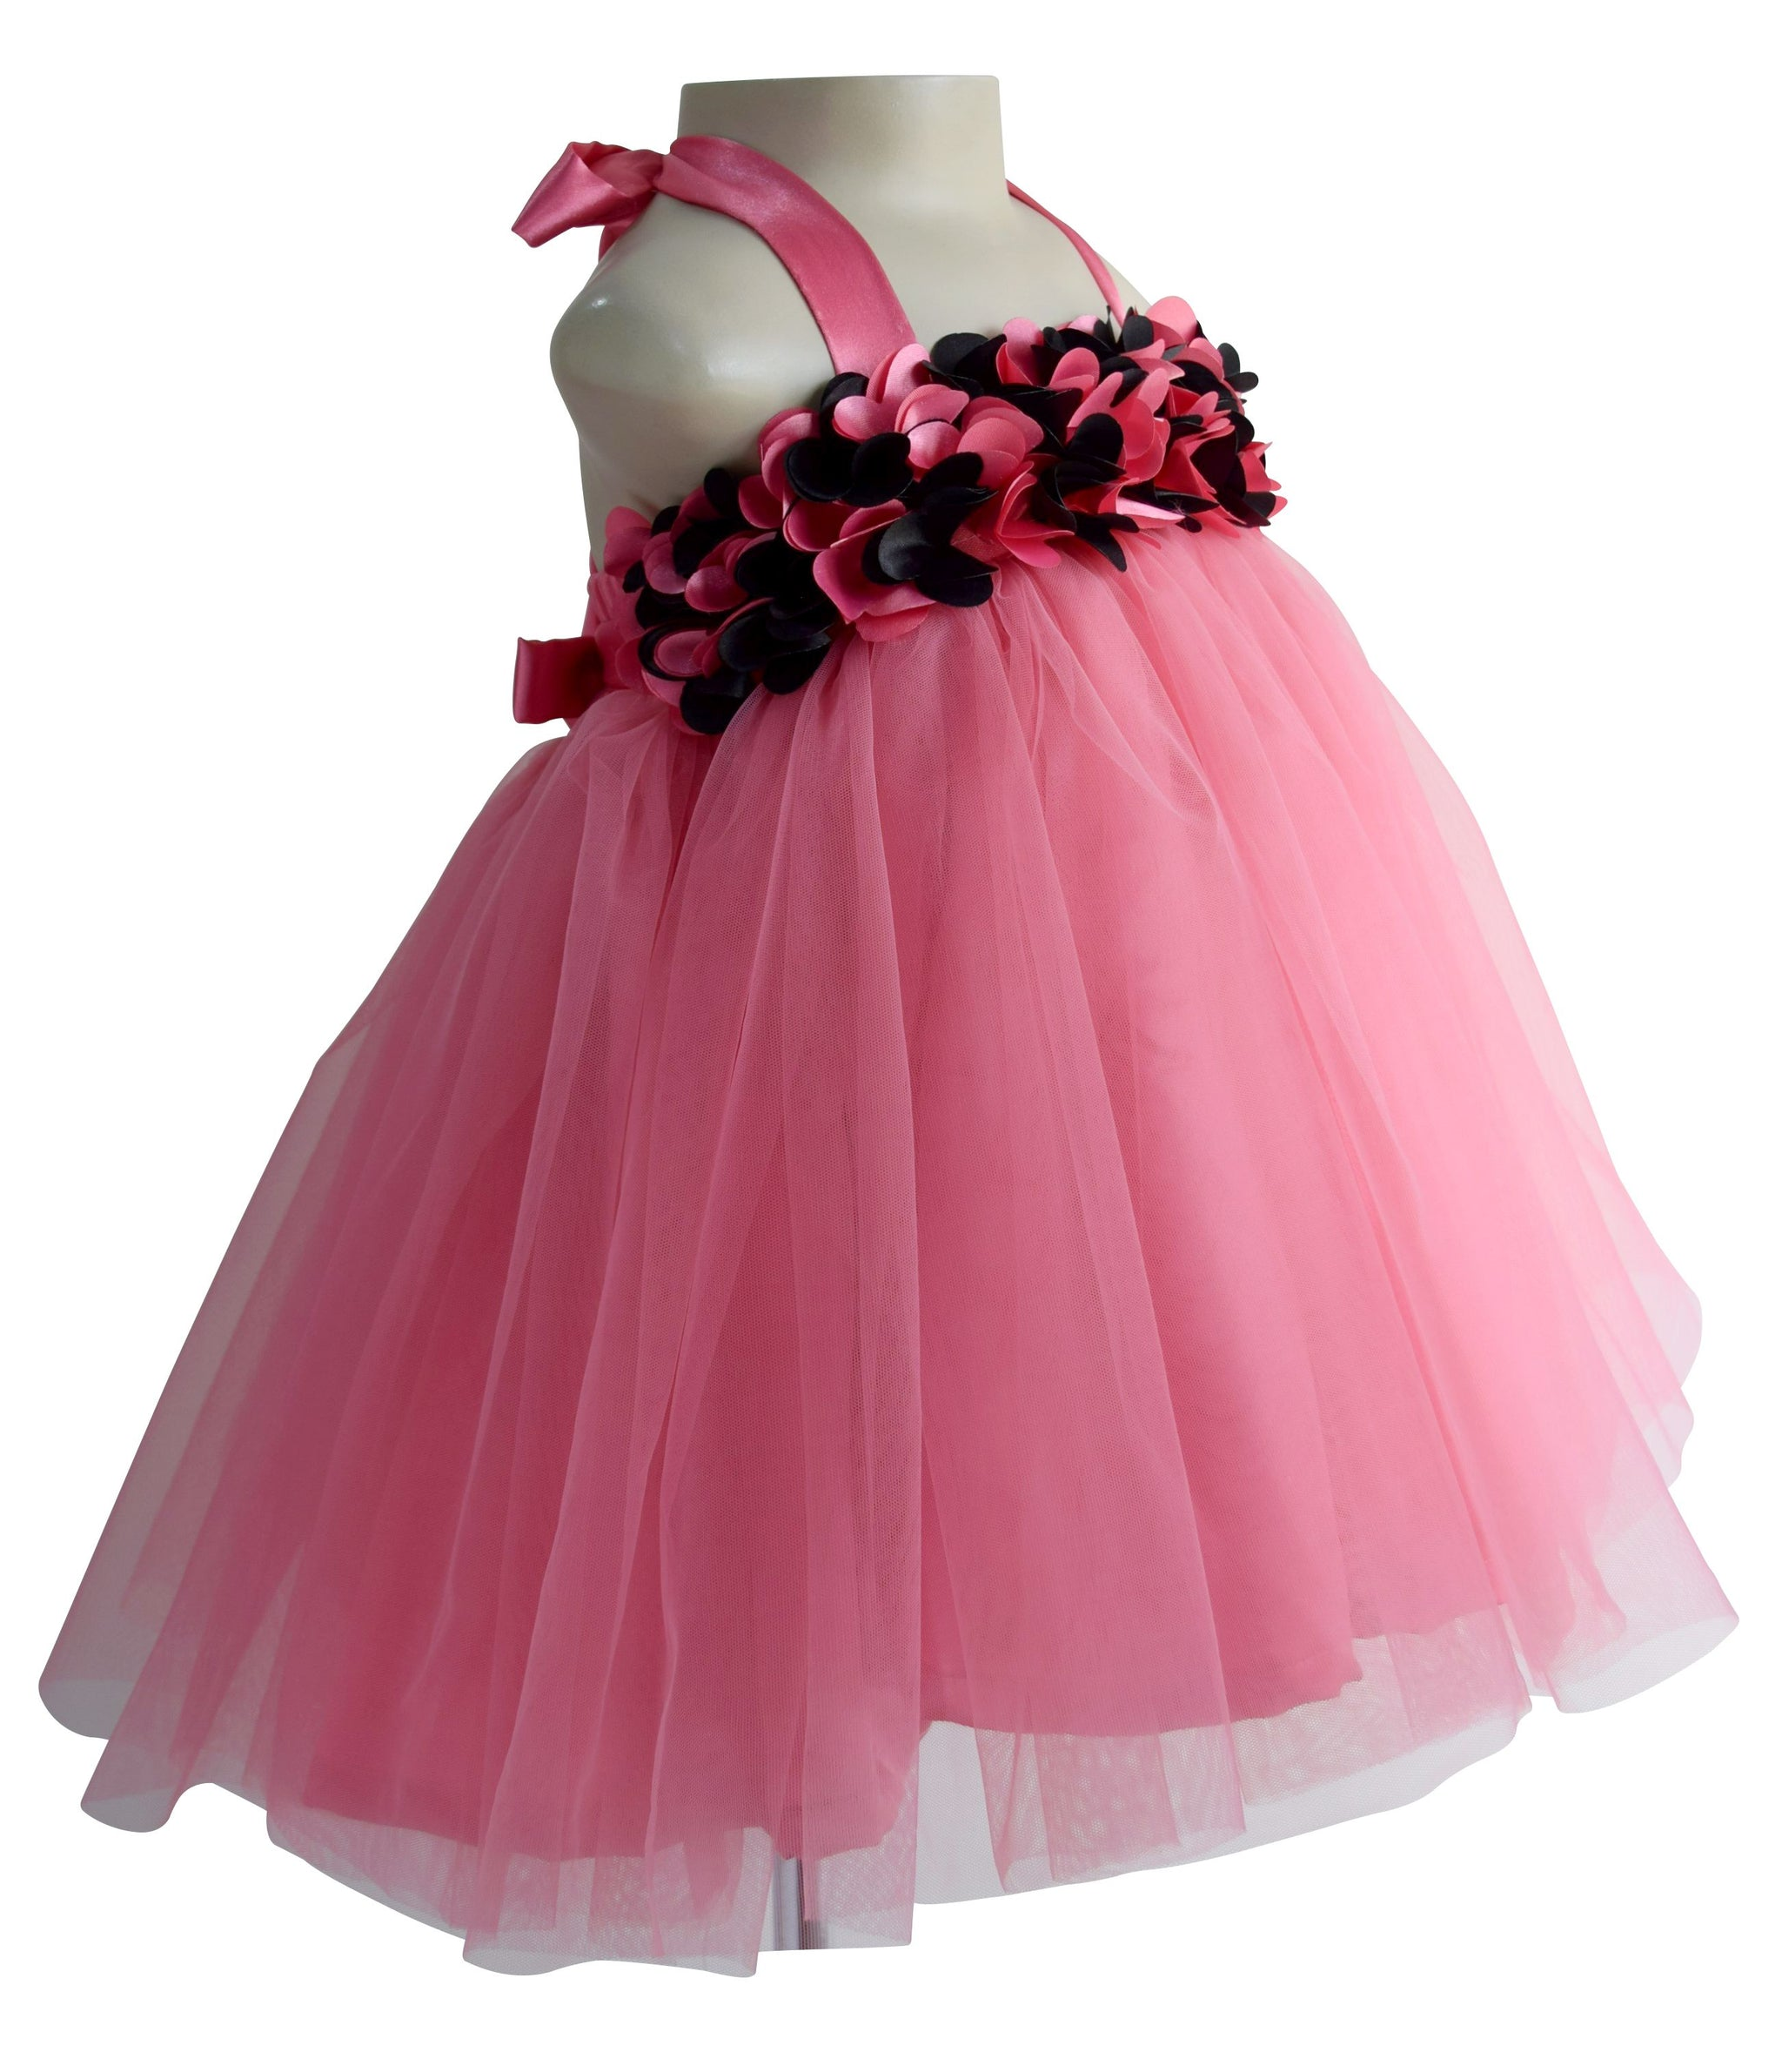 e0afc8ea2da Buy Girls party wear dresses online